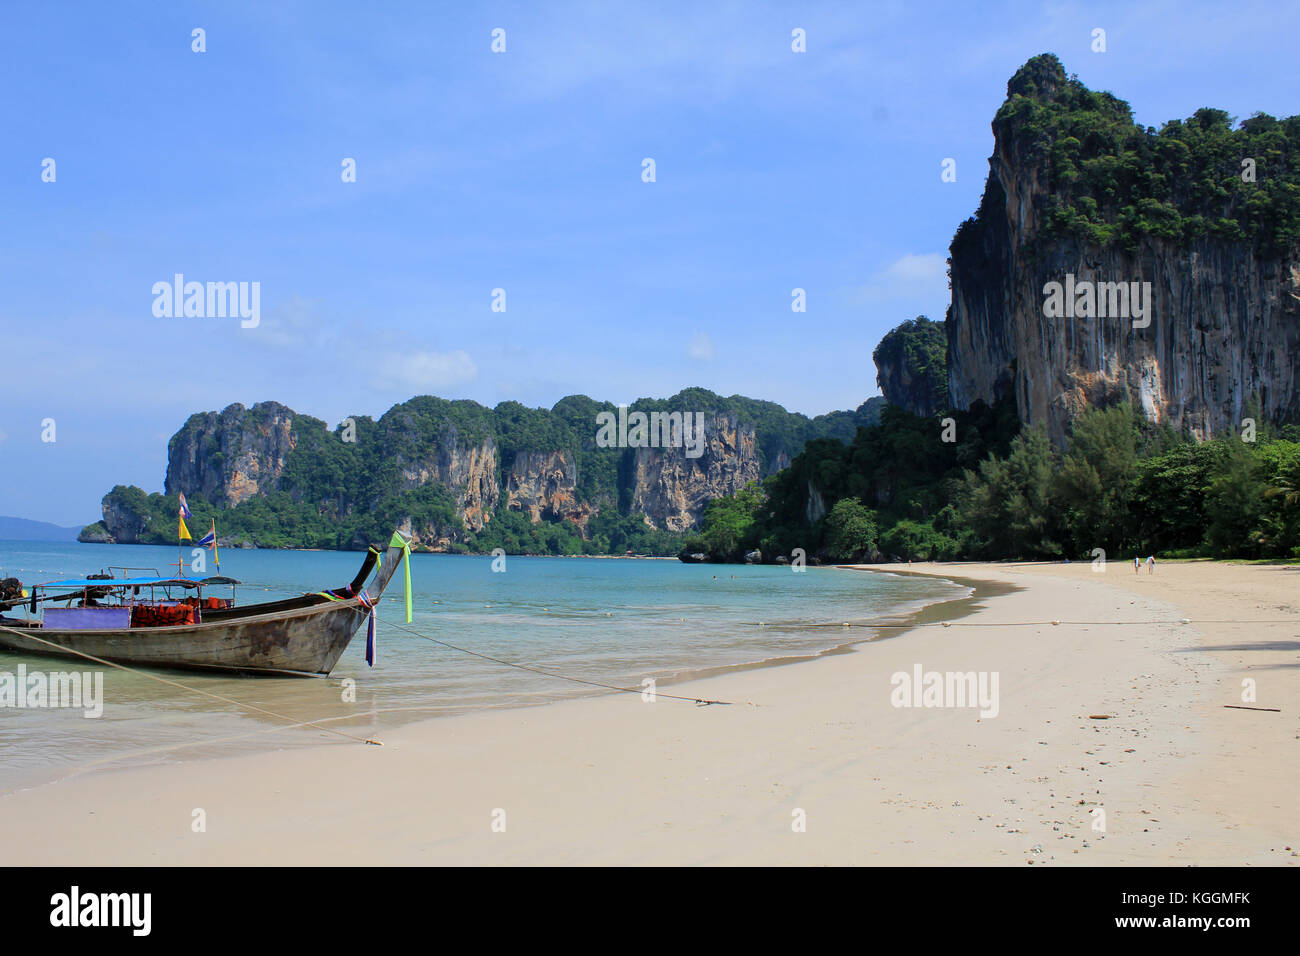 Beaches of Railay in Krabi, Thailand - Stock Image